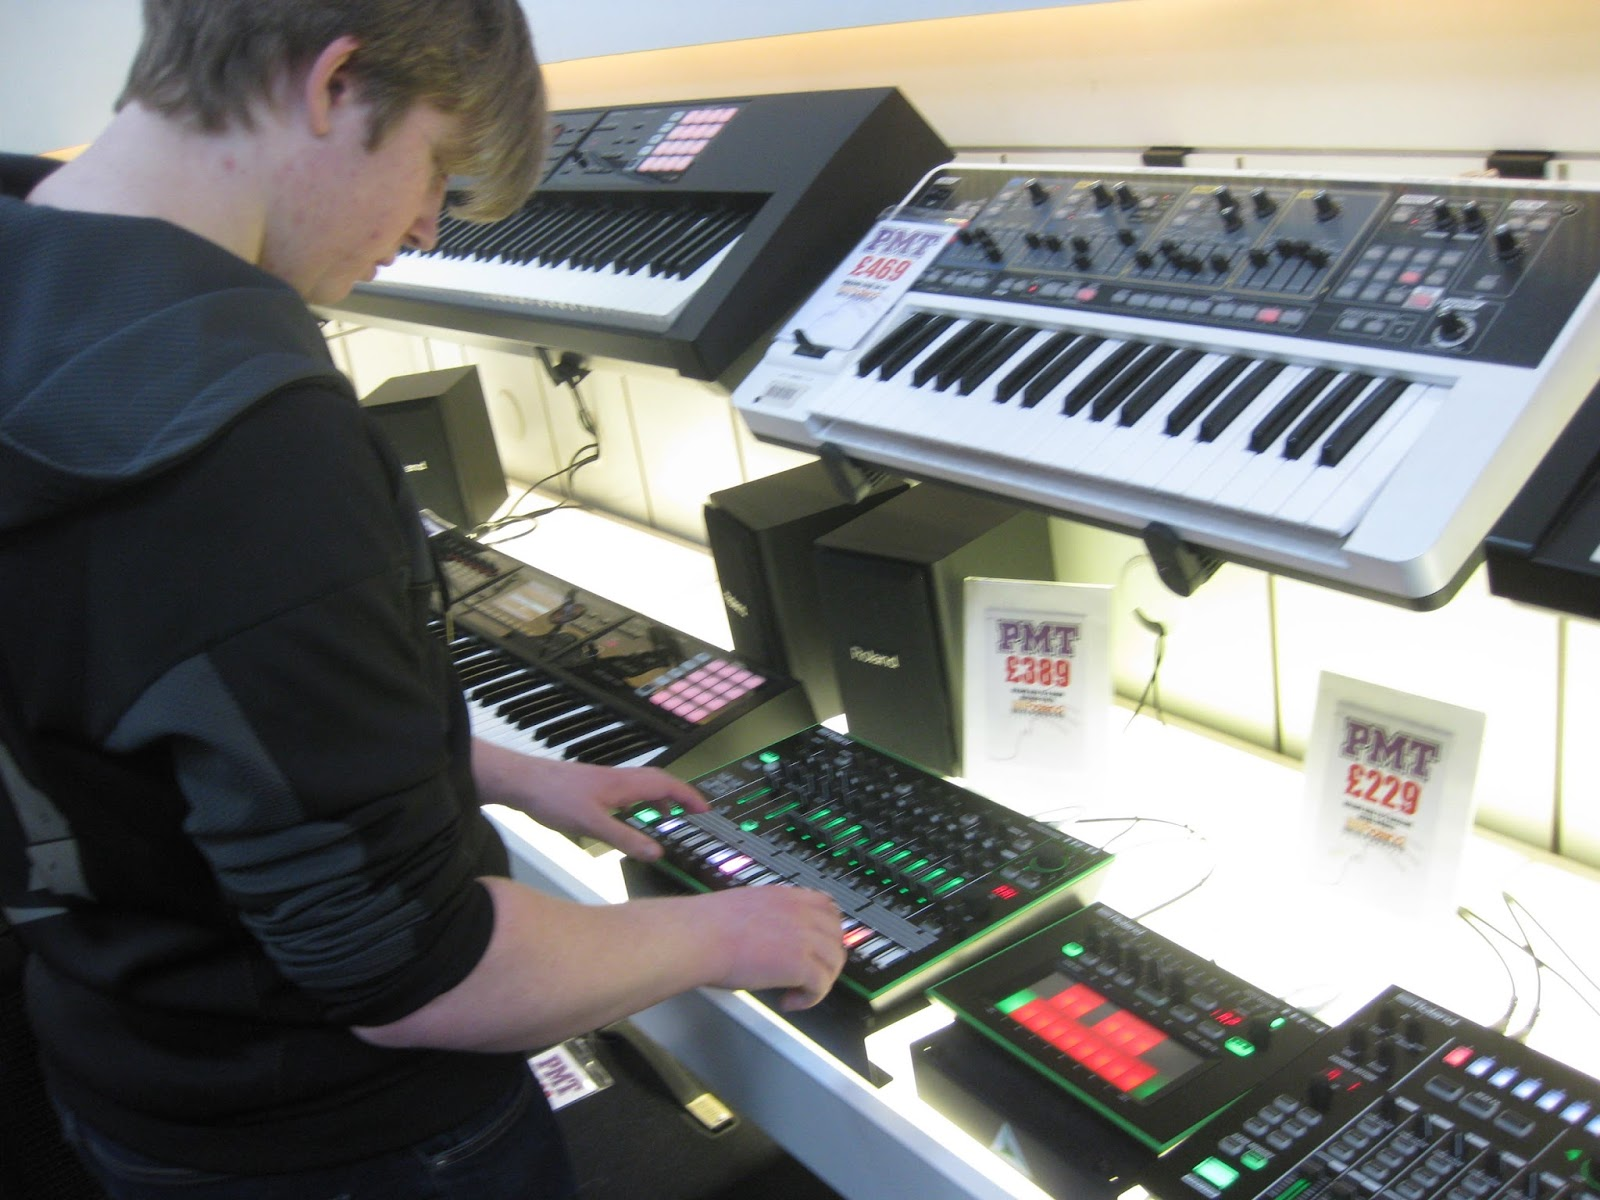 music technology coursework The music technology program offers courses for students who wish to earn a certificate or an associate degree in music technology or who plan on transferring as a music major to a four-year institution.